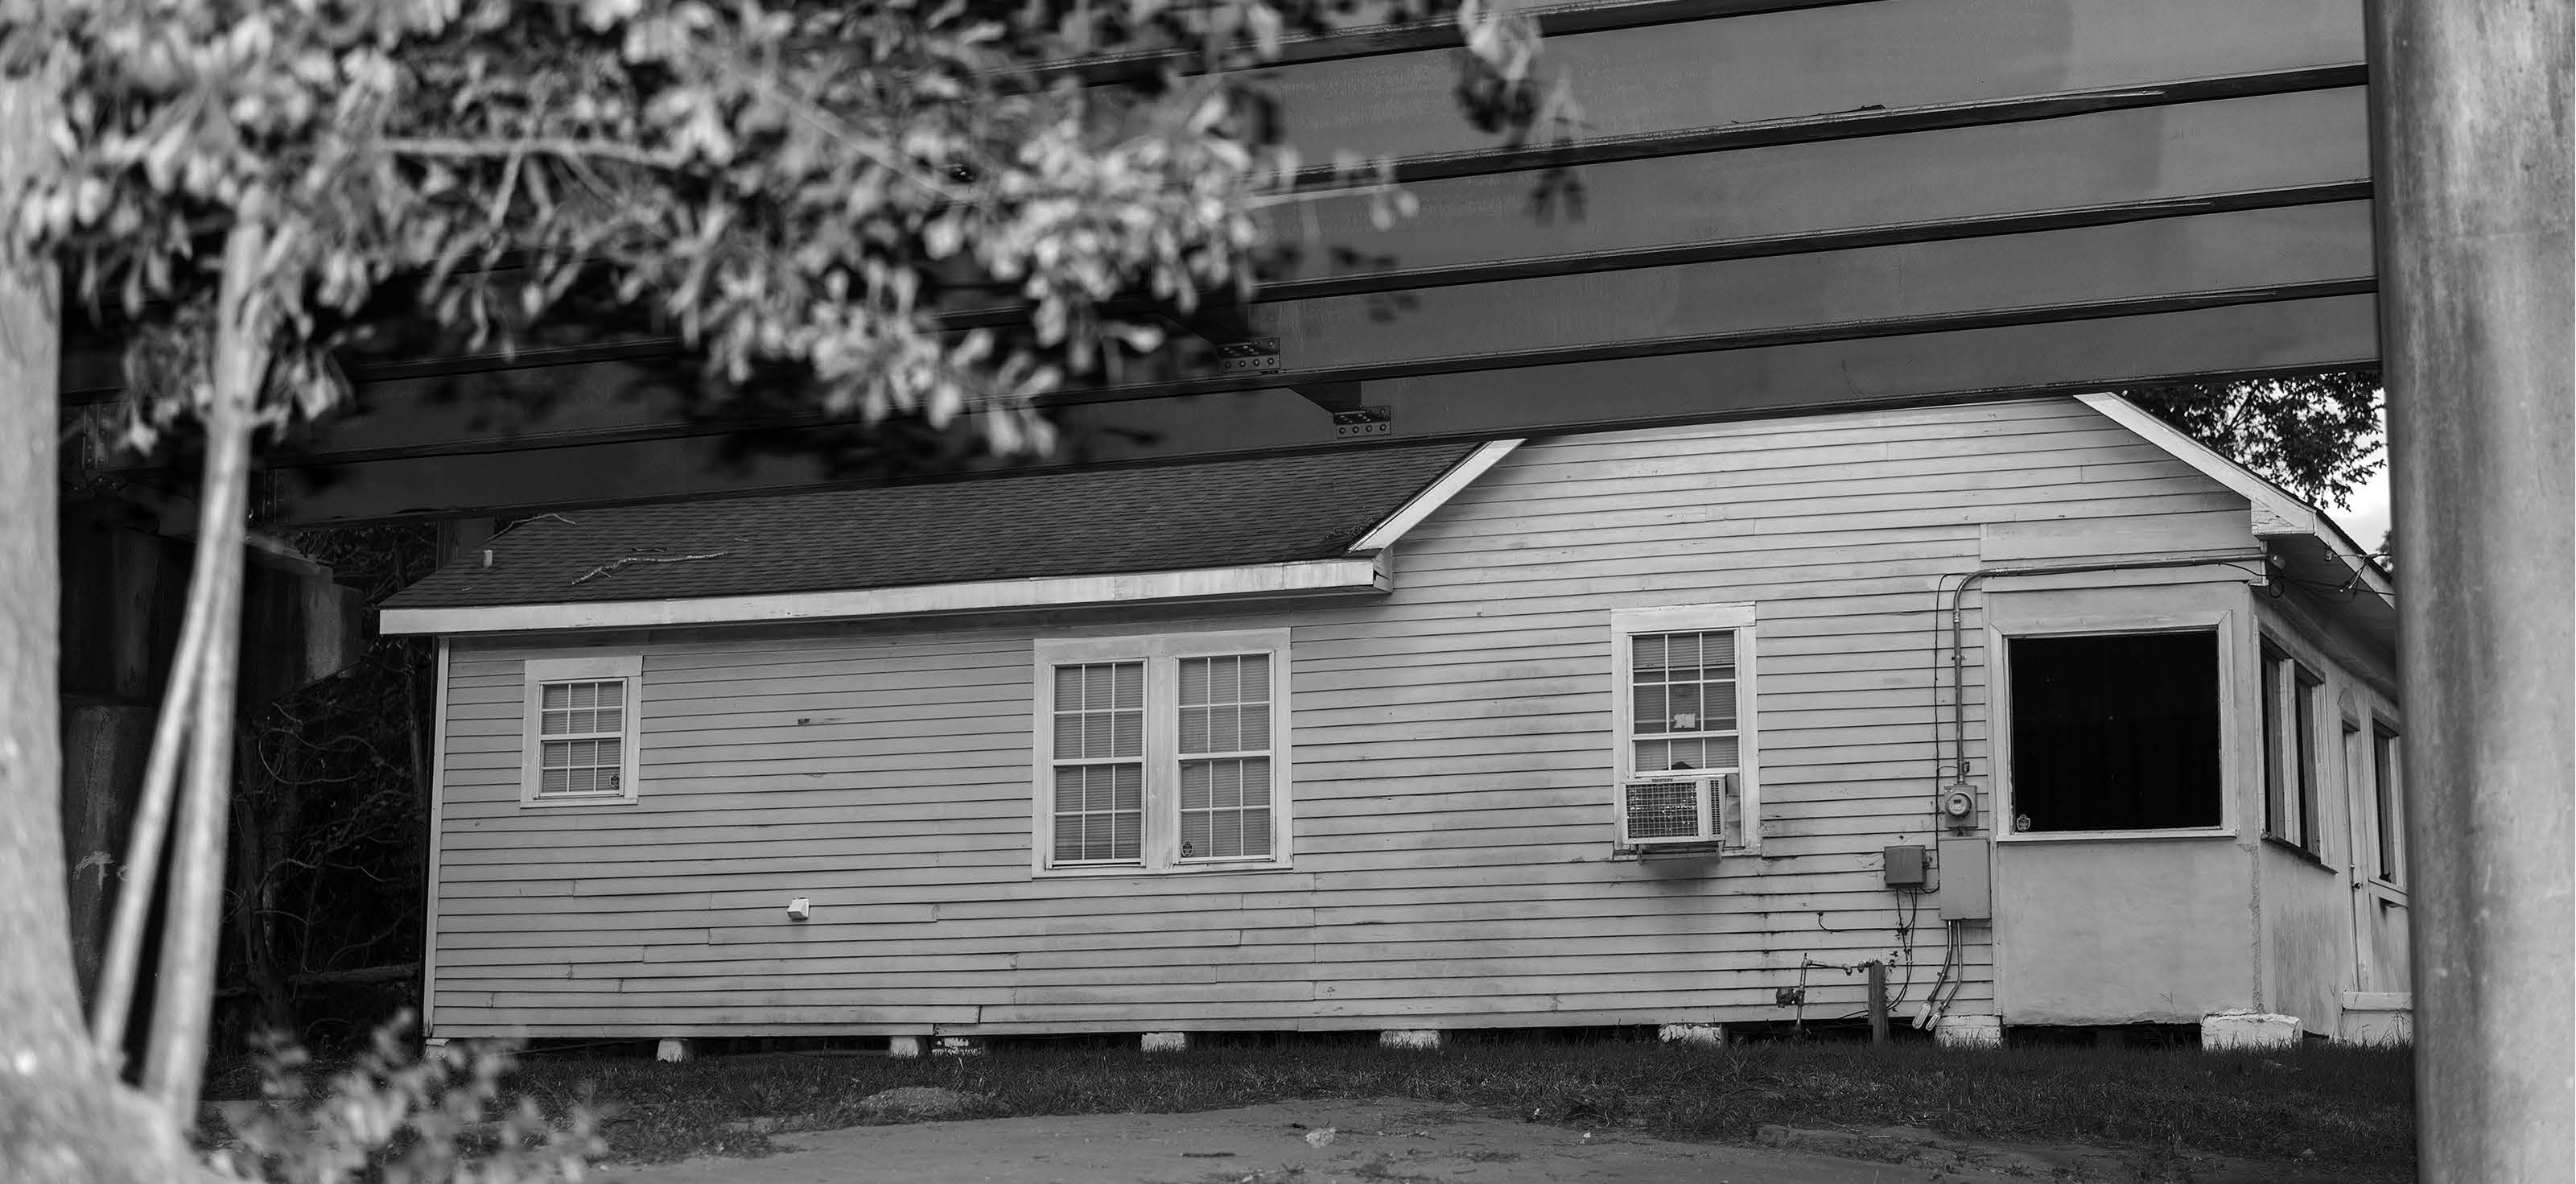 Black and white photo of the side of a house